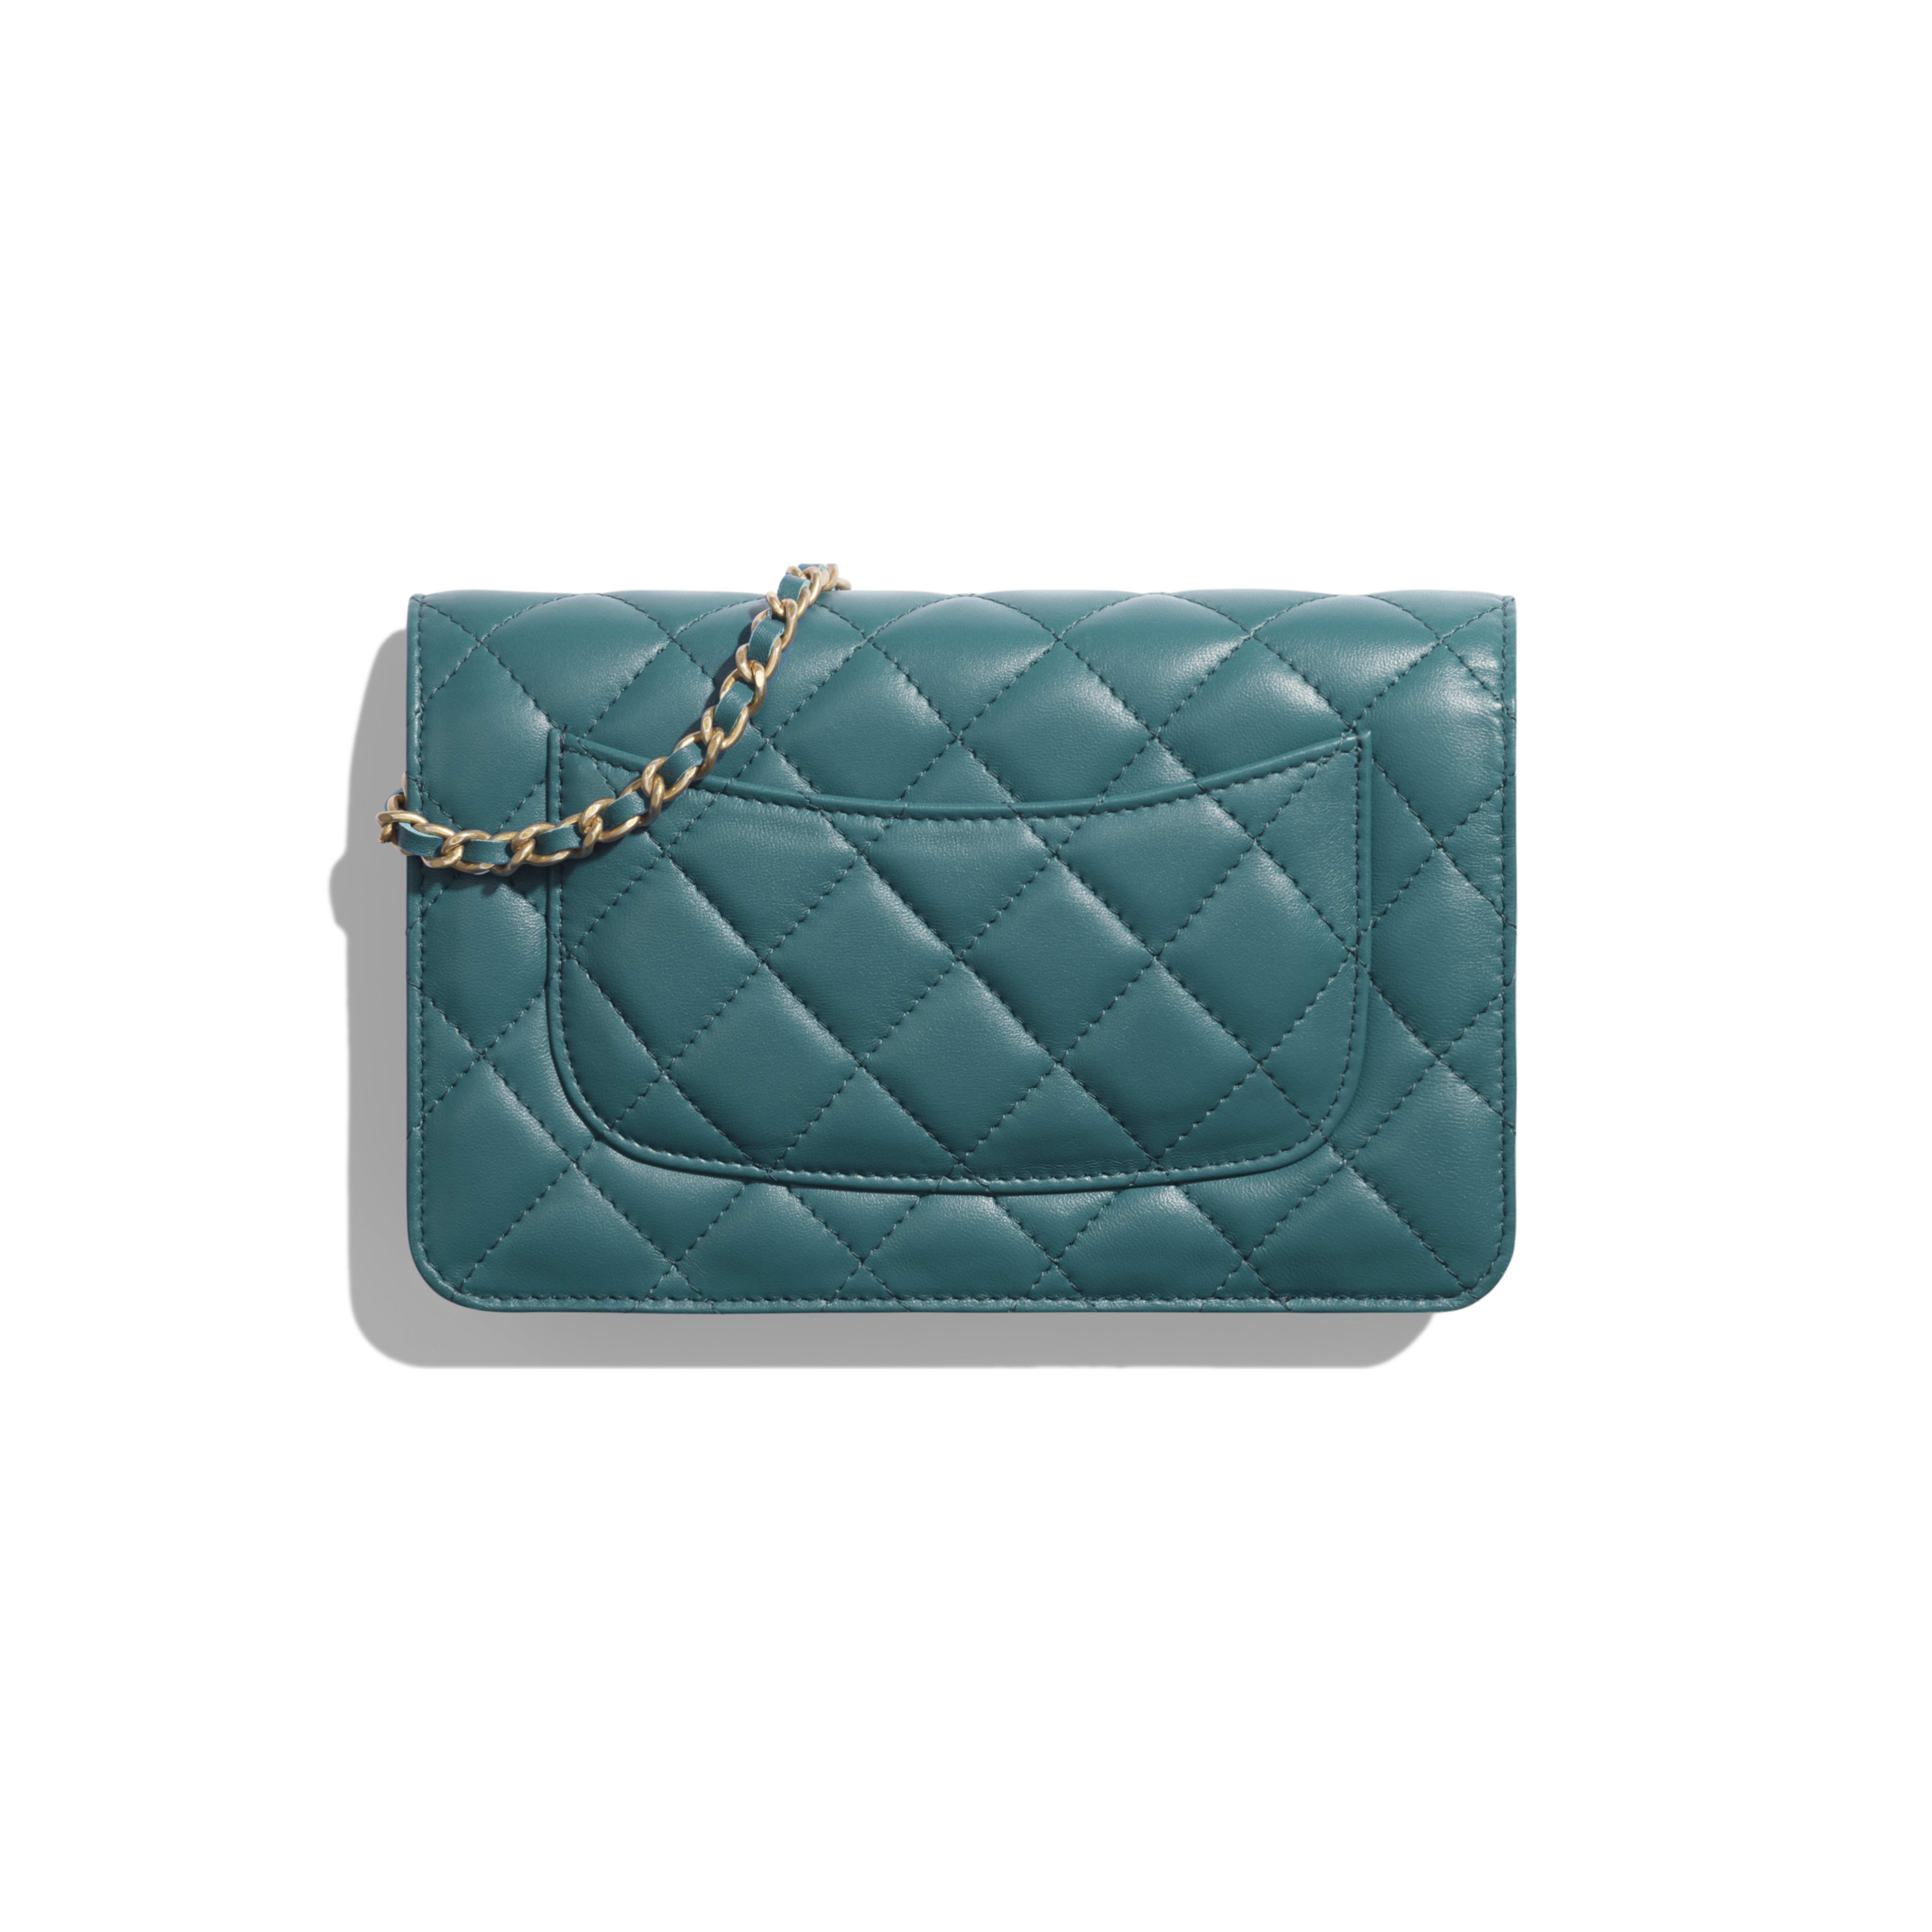 Wallet on Chain - Dark Turquoise - Lambskin & Gold-Tone Metal - Alternative view - see full sized version